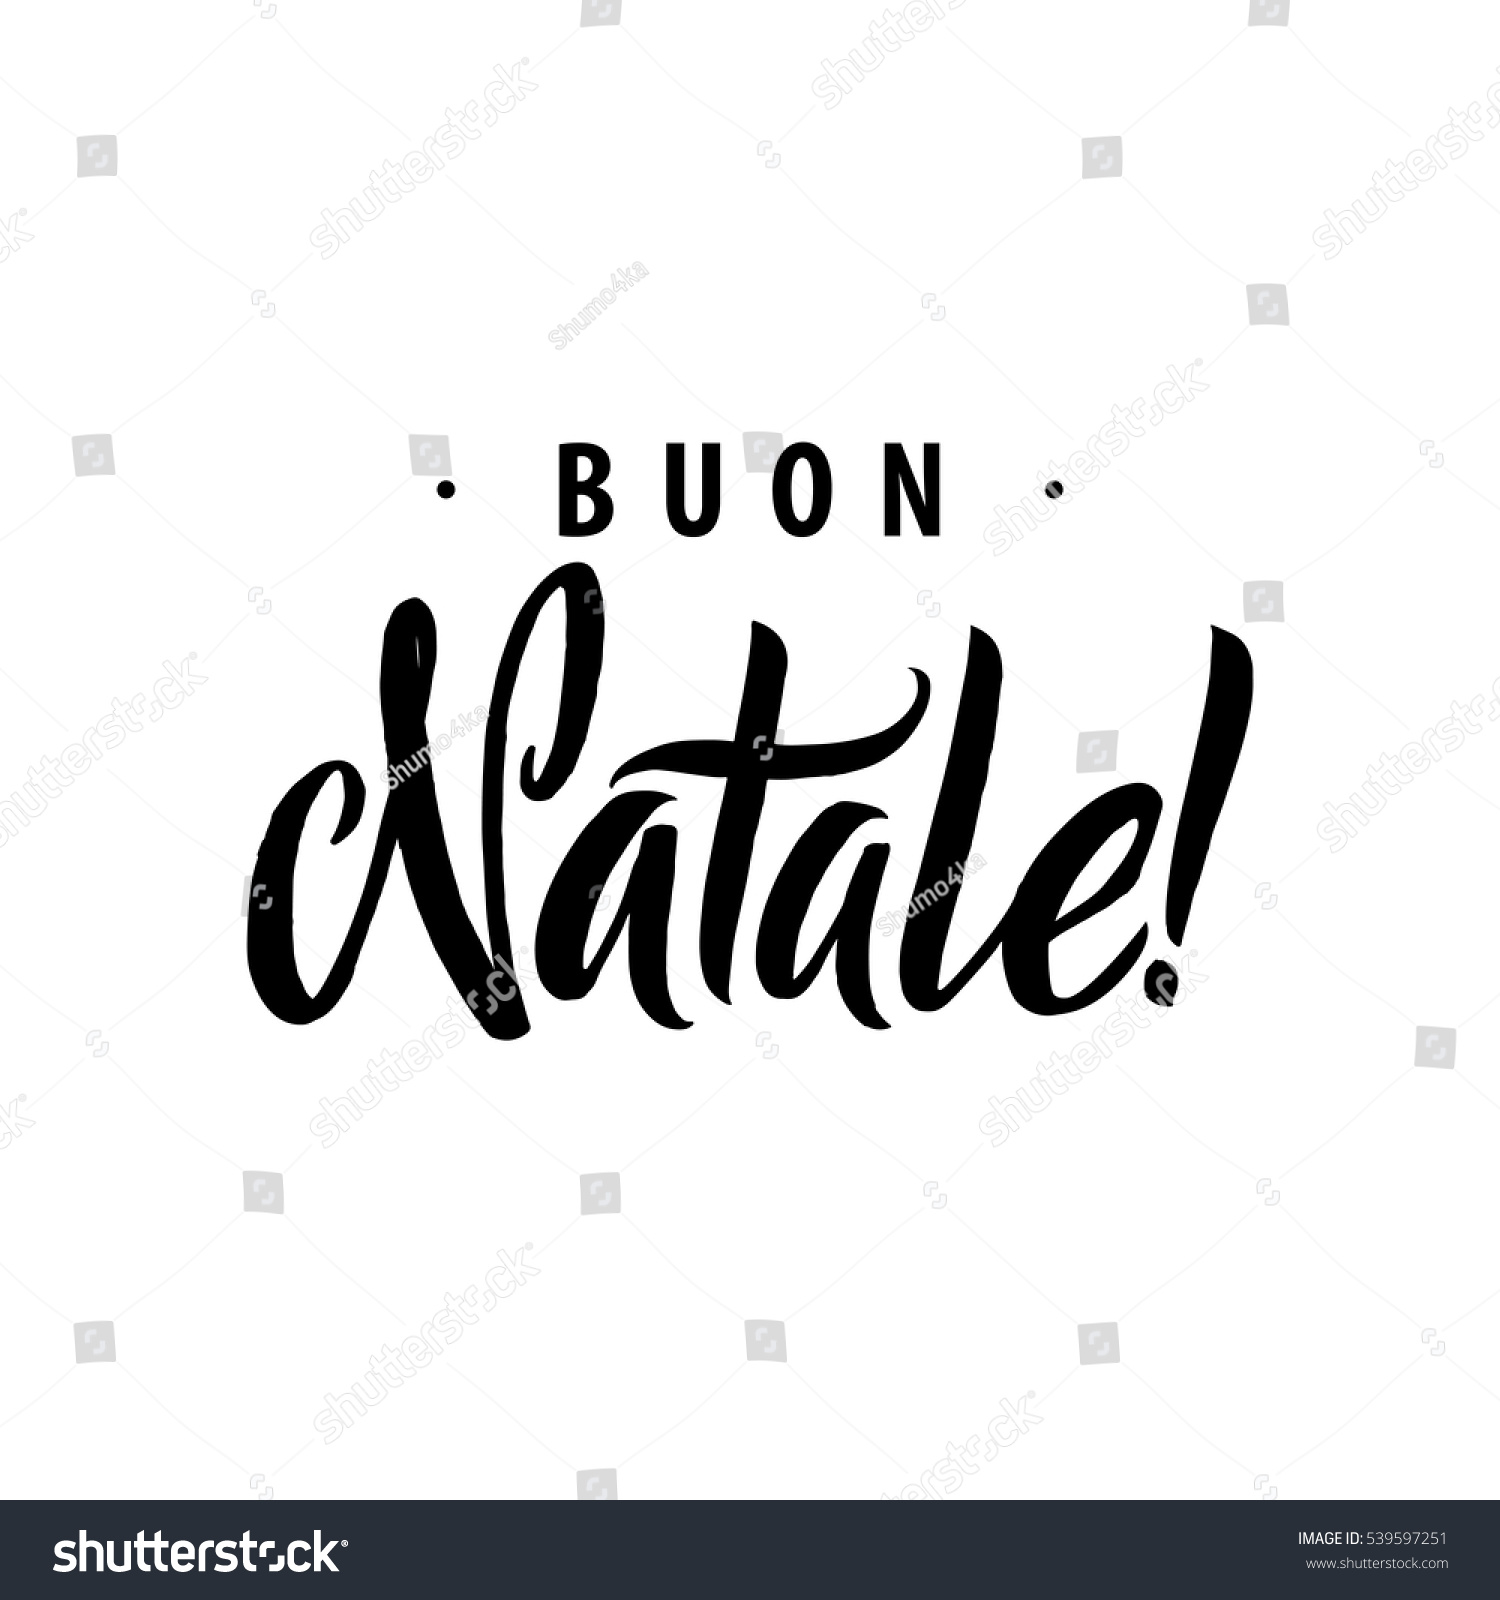 Buon Natale Merry Christmas Calligraphy Template Stock Vector